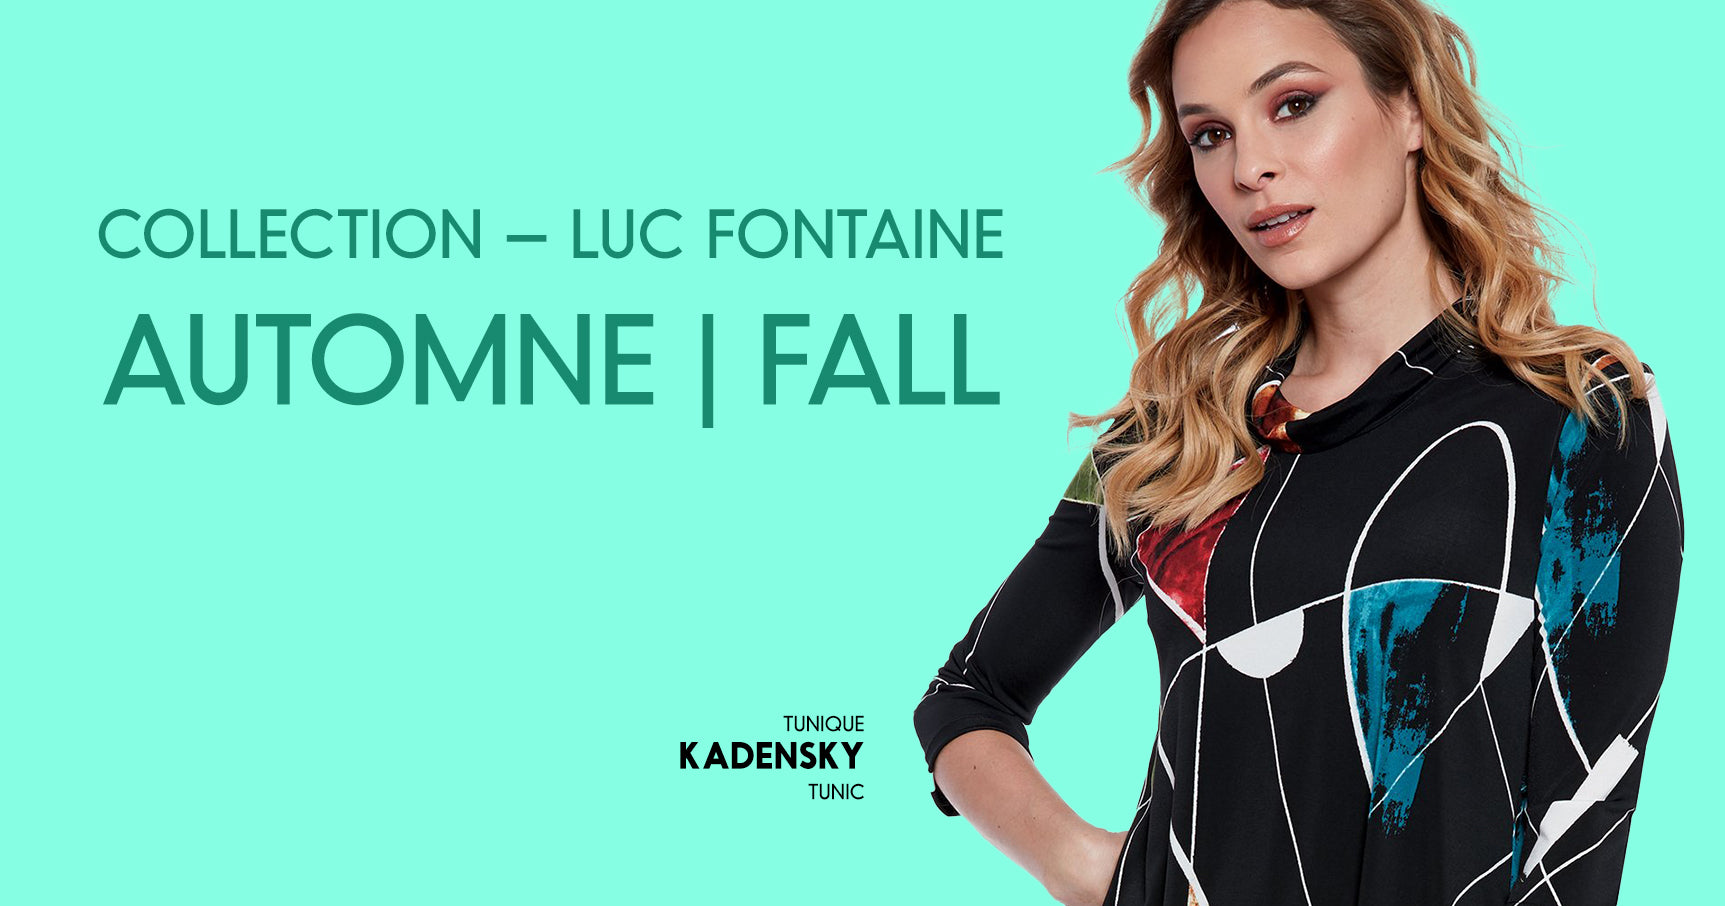 Collection Luc Fontaine - Fall - Automne